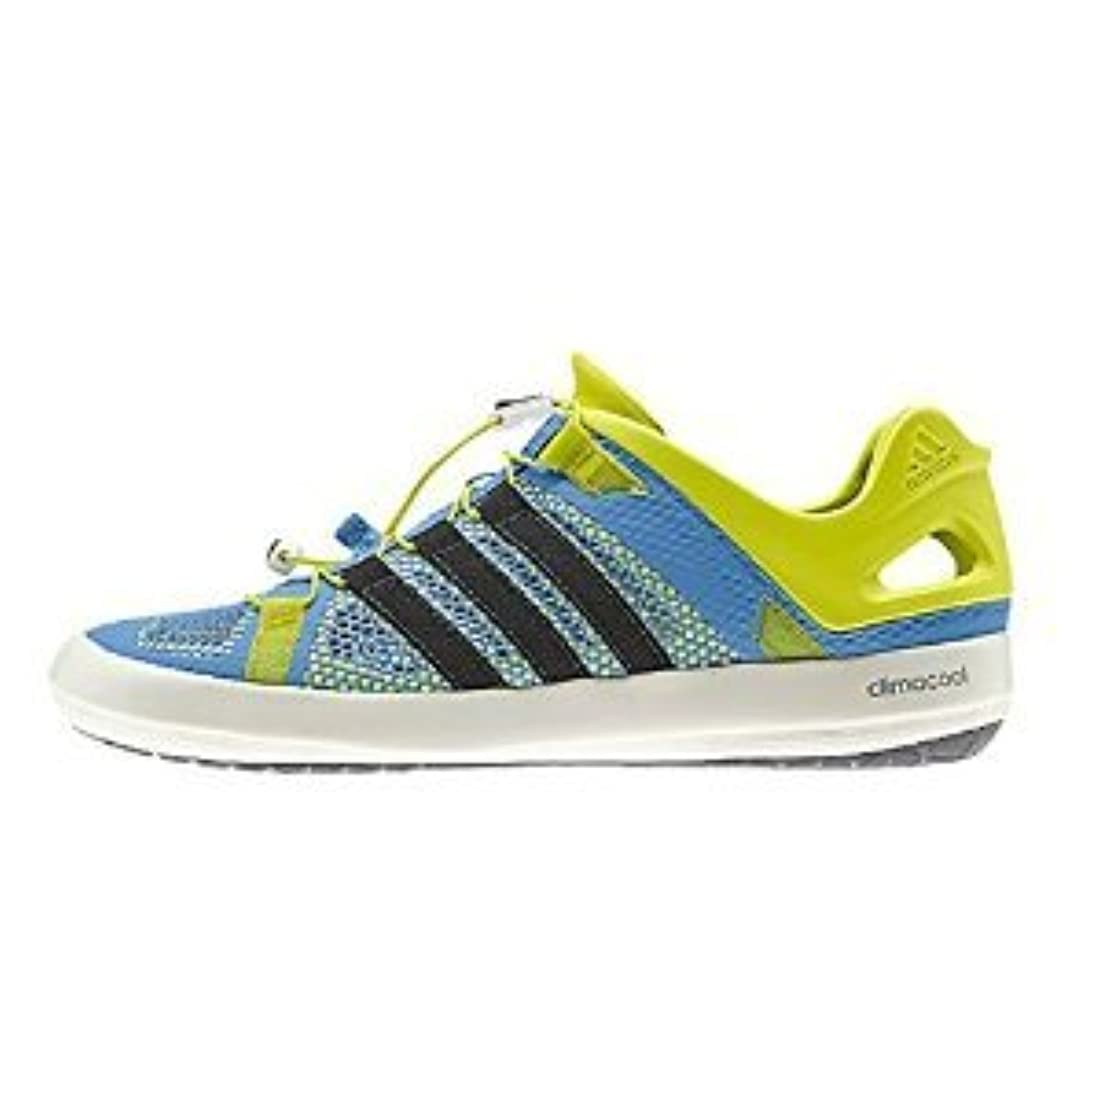 Adidas Climacool Boat Pure Shoe